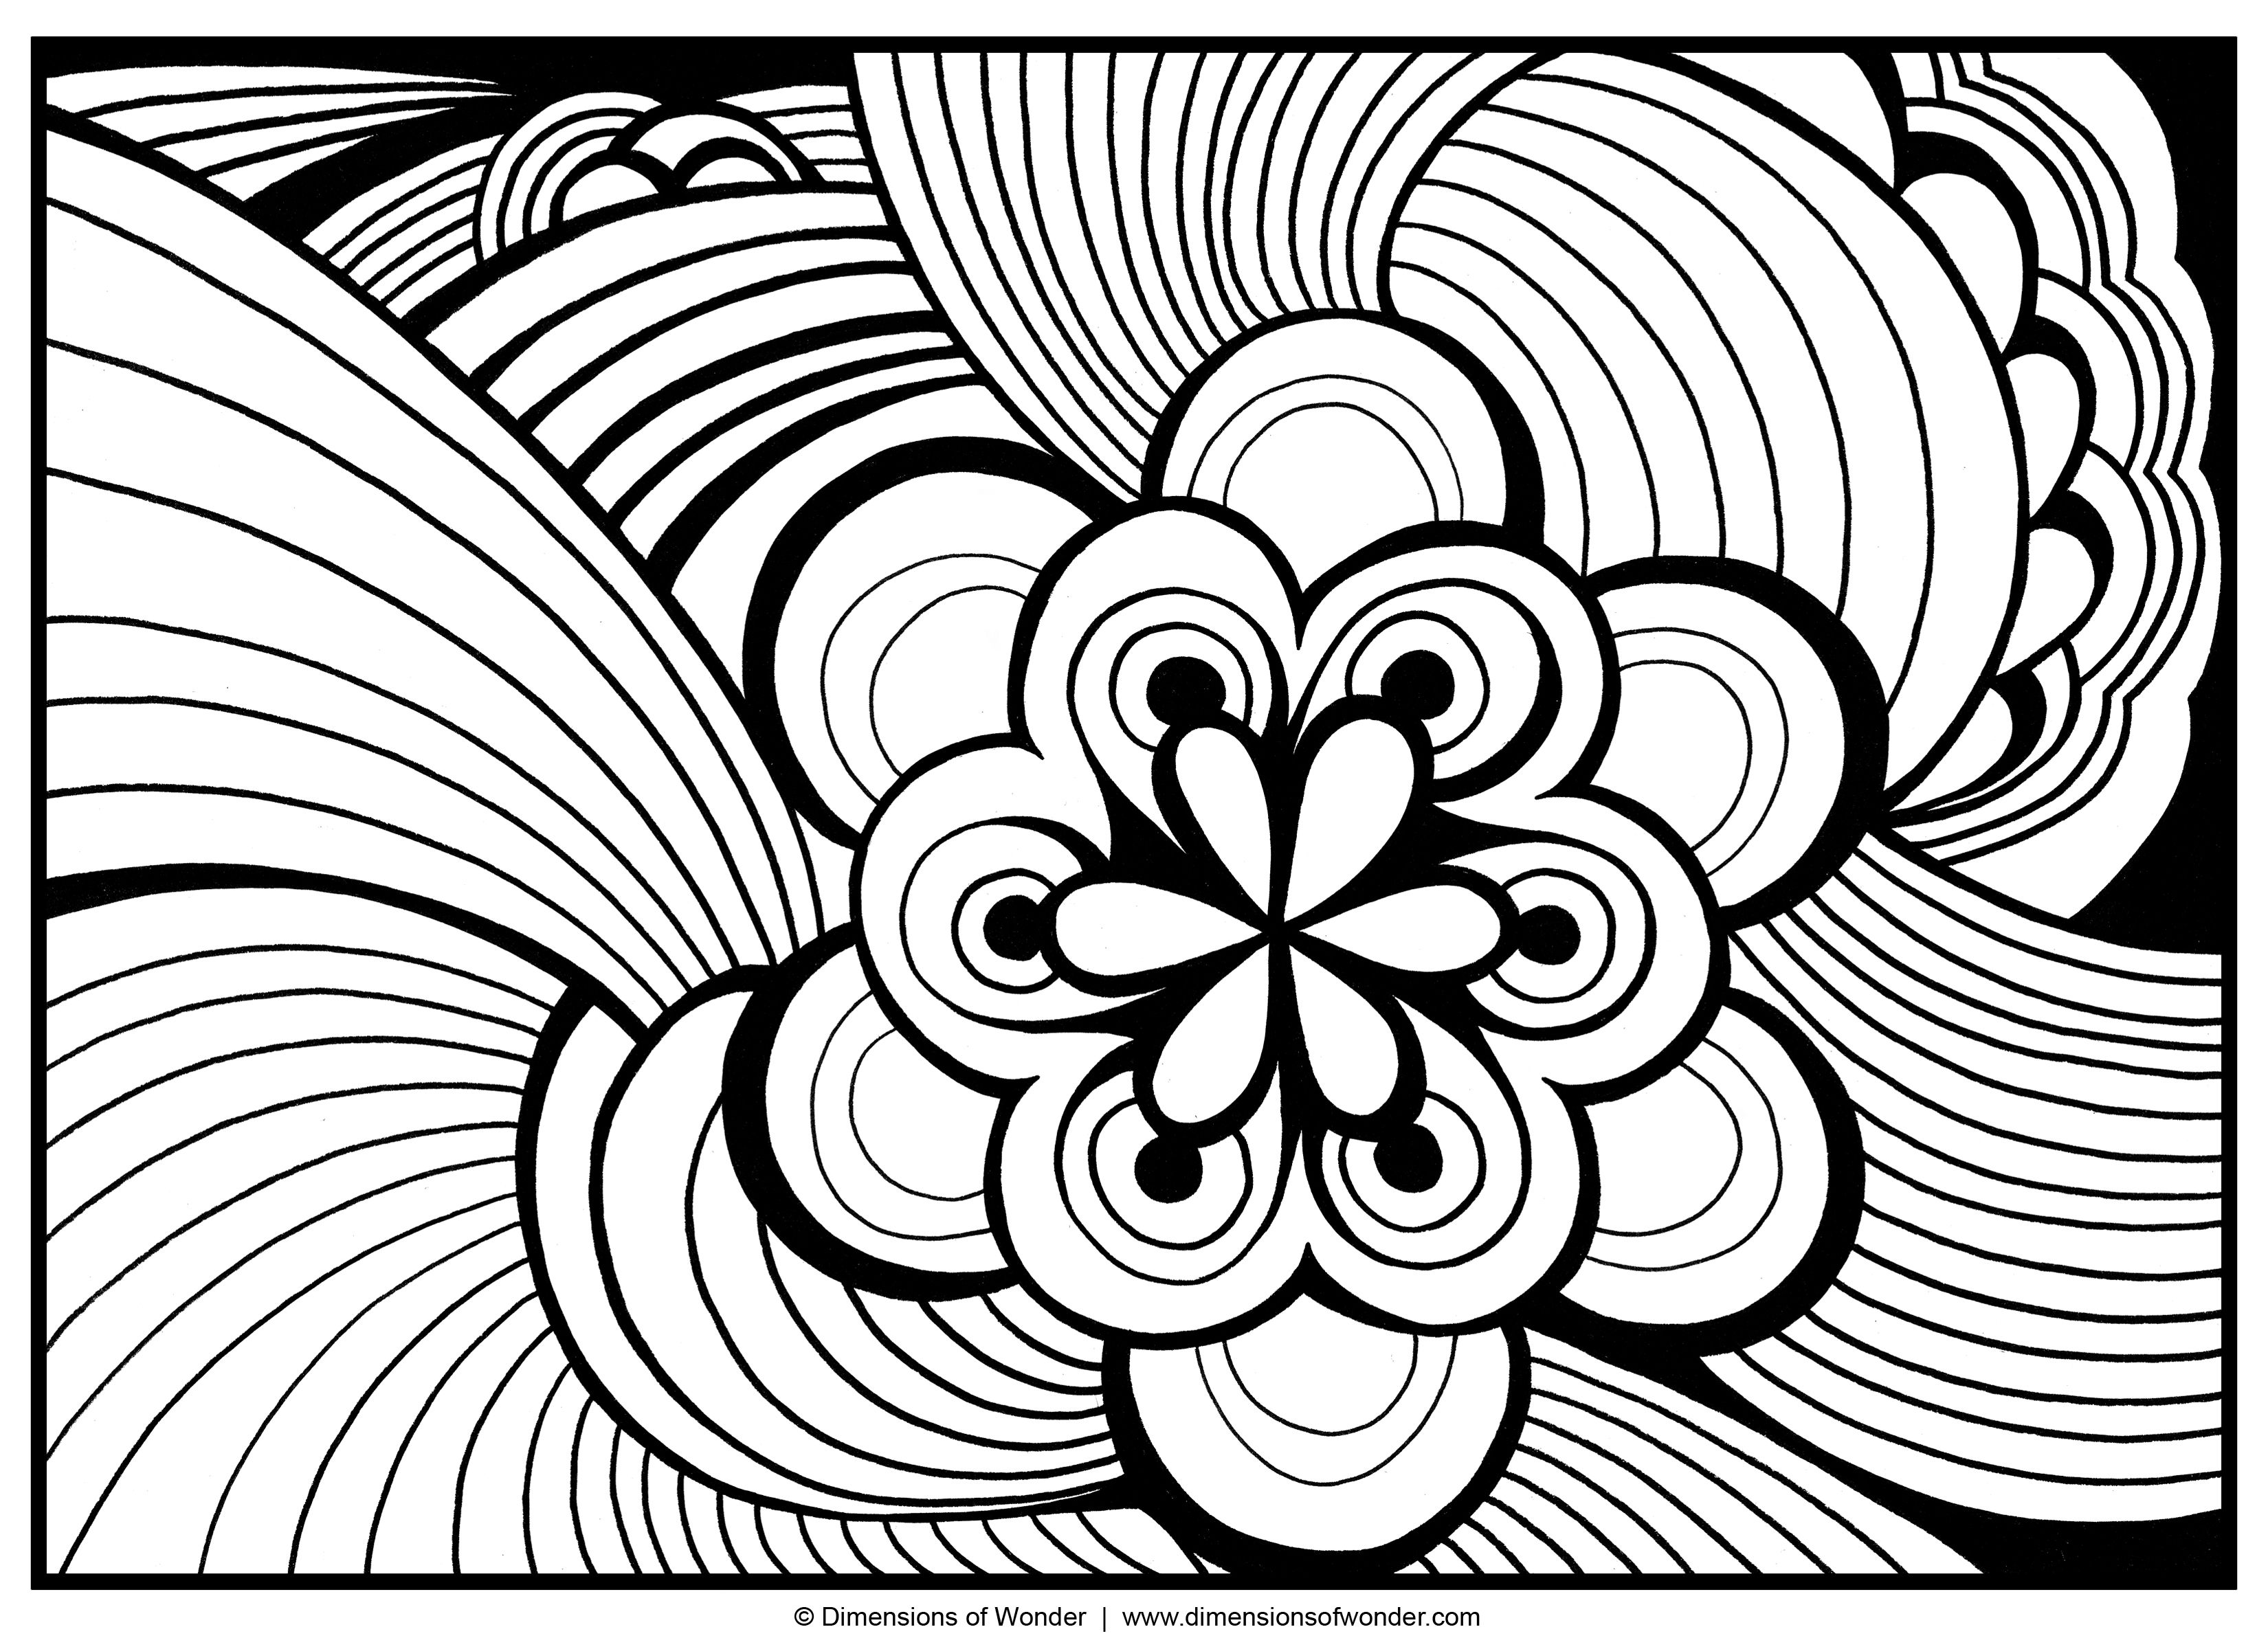 Coloring pages for adults abstract -